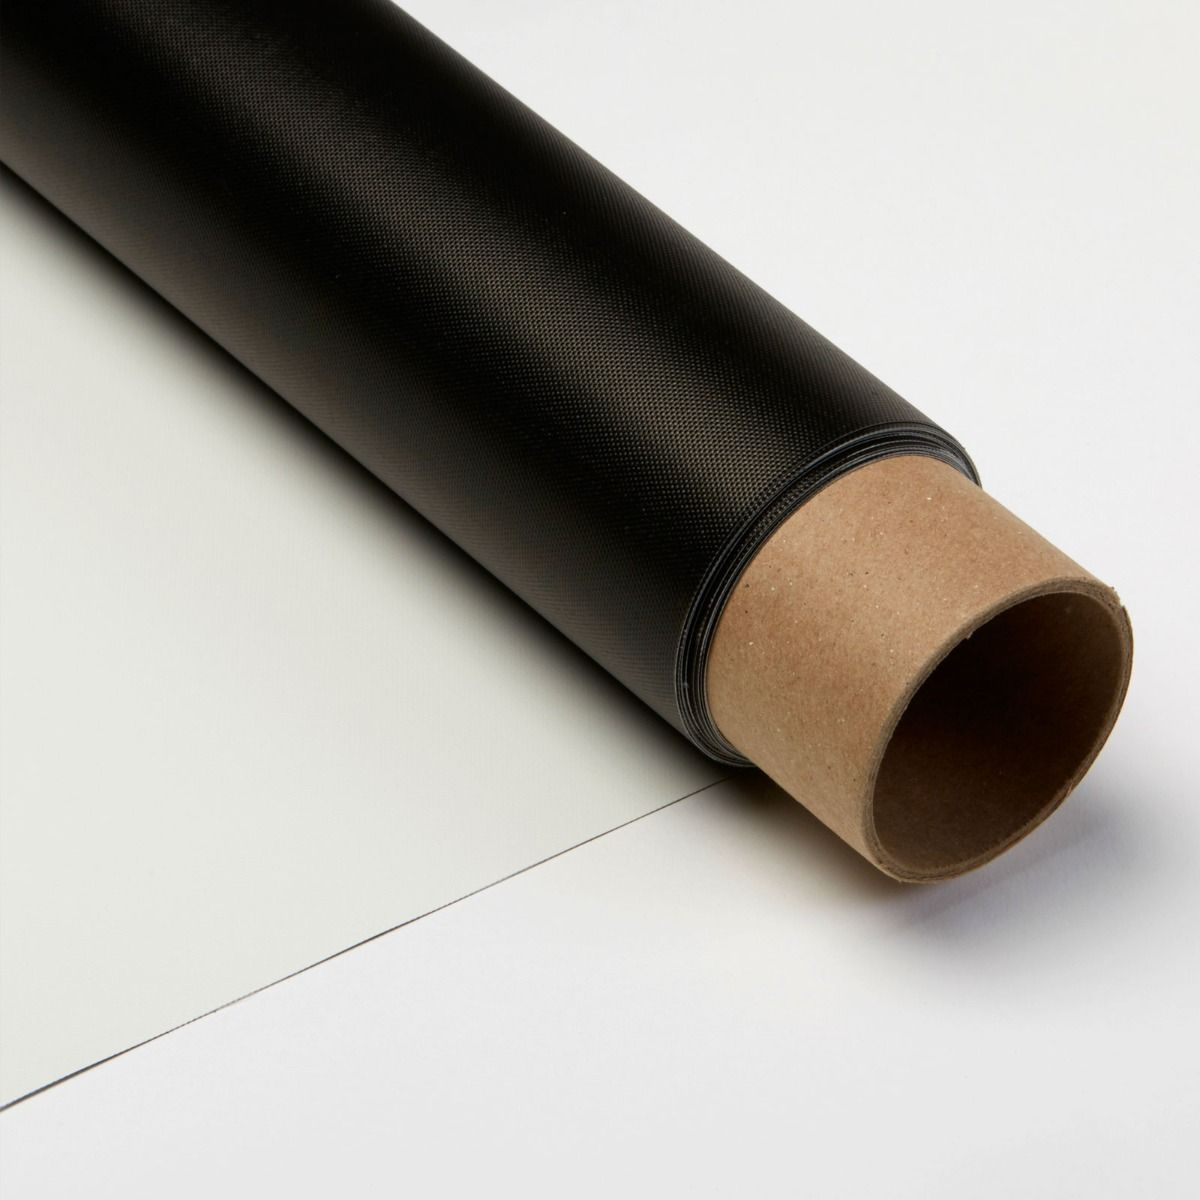 ProWhite Screen Material Shipping in a Tube